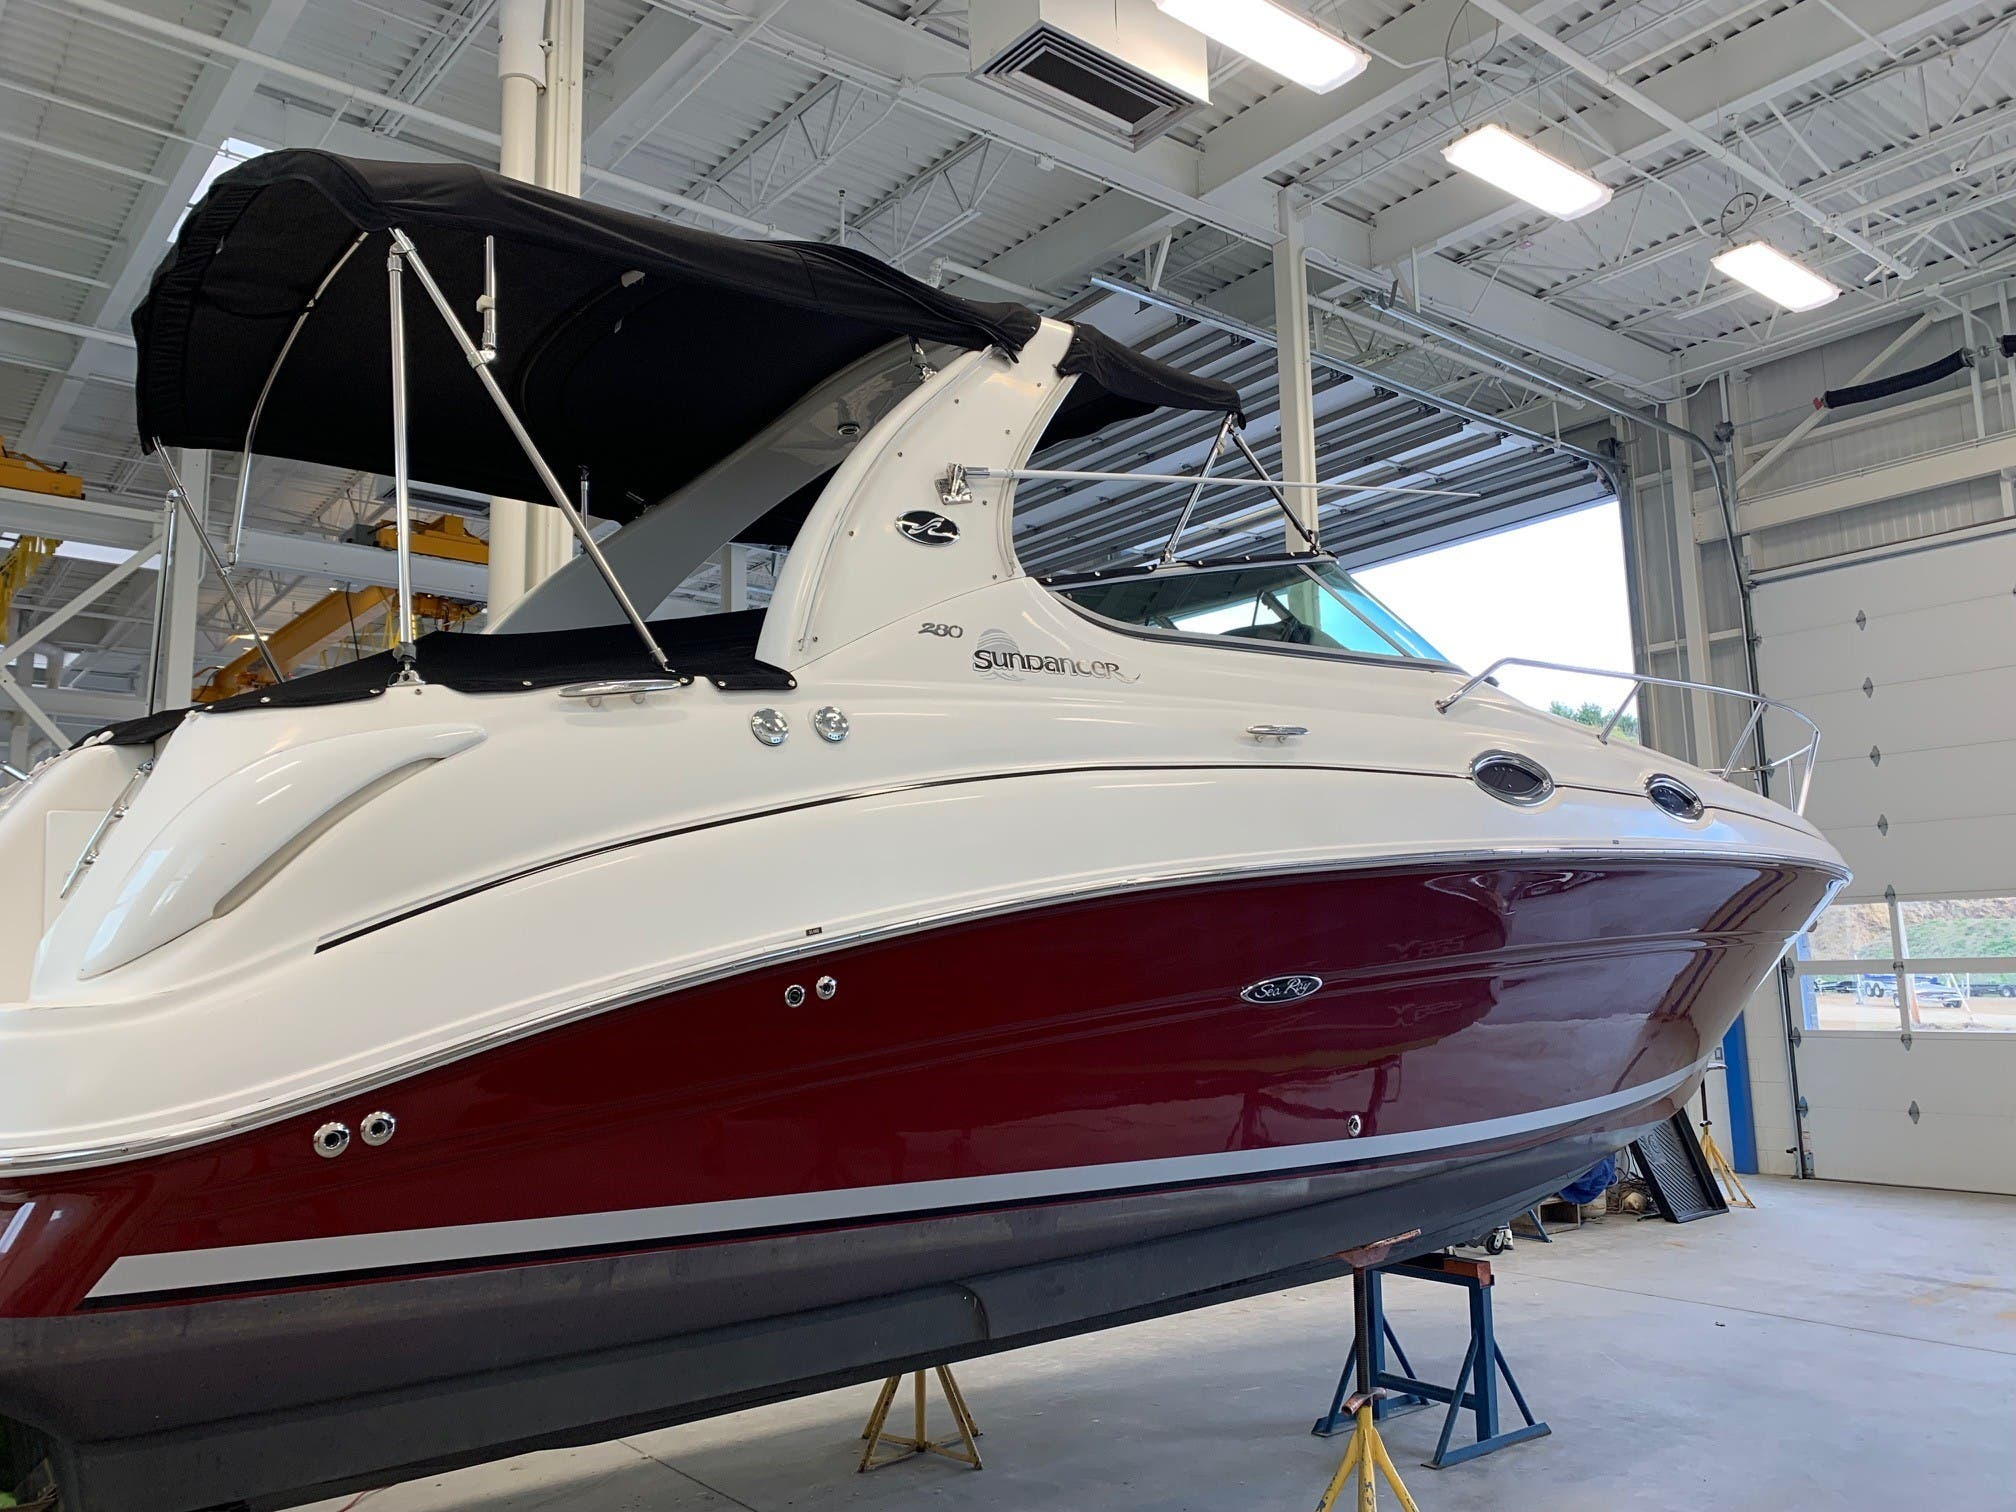 2006 Sea Ray boat for sale, model of the boat is 280 SUNDANCER & Image # 3 of 18